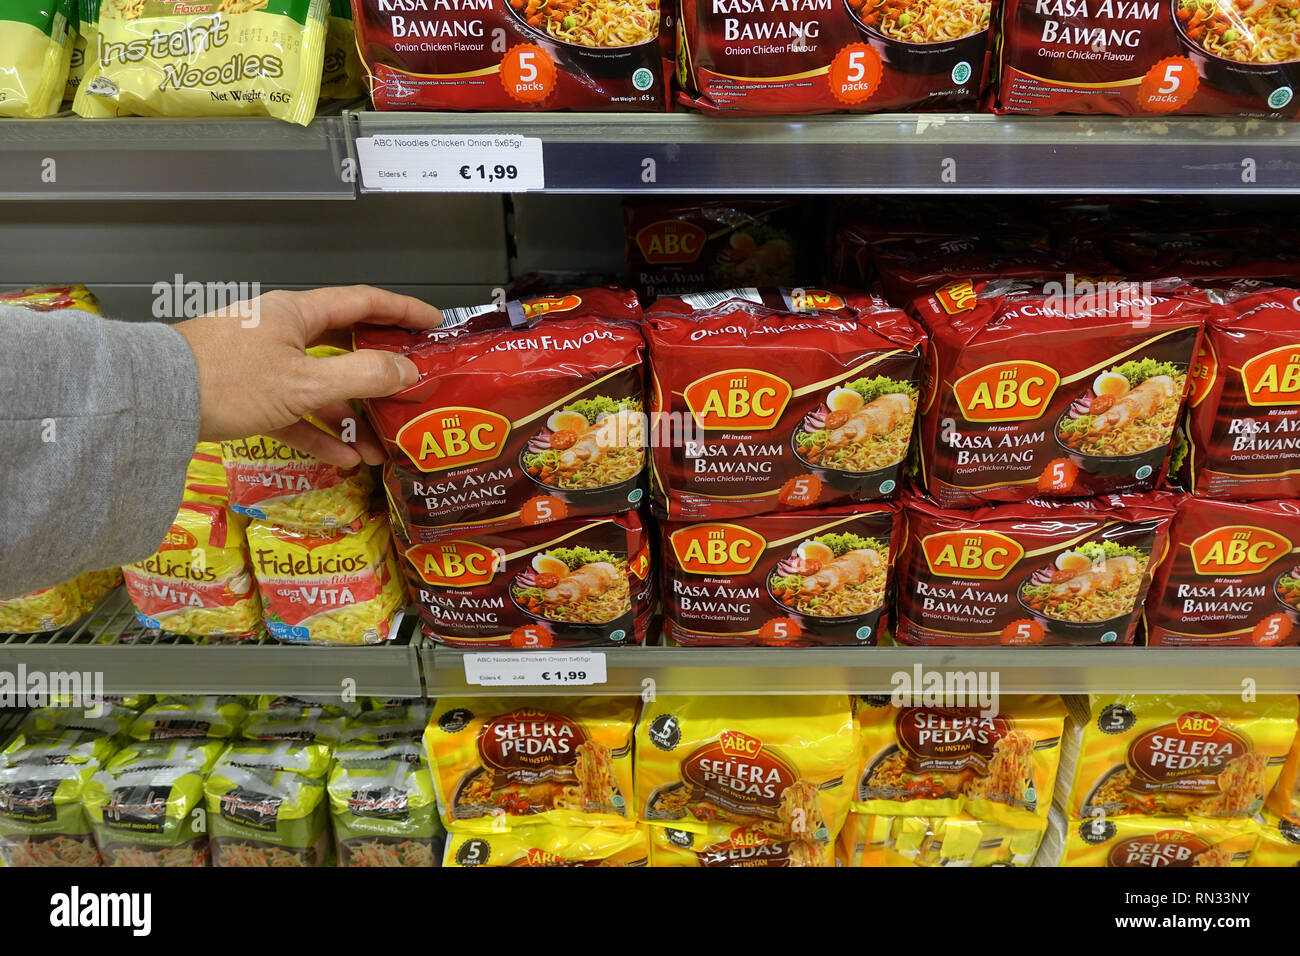 instant soups, and noodles - Stock Image